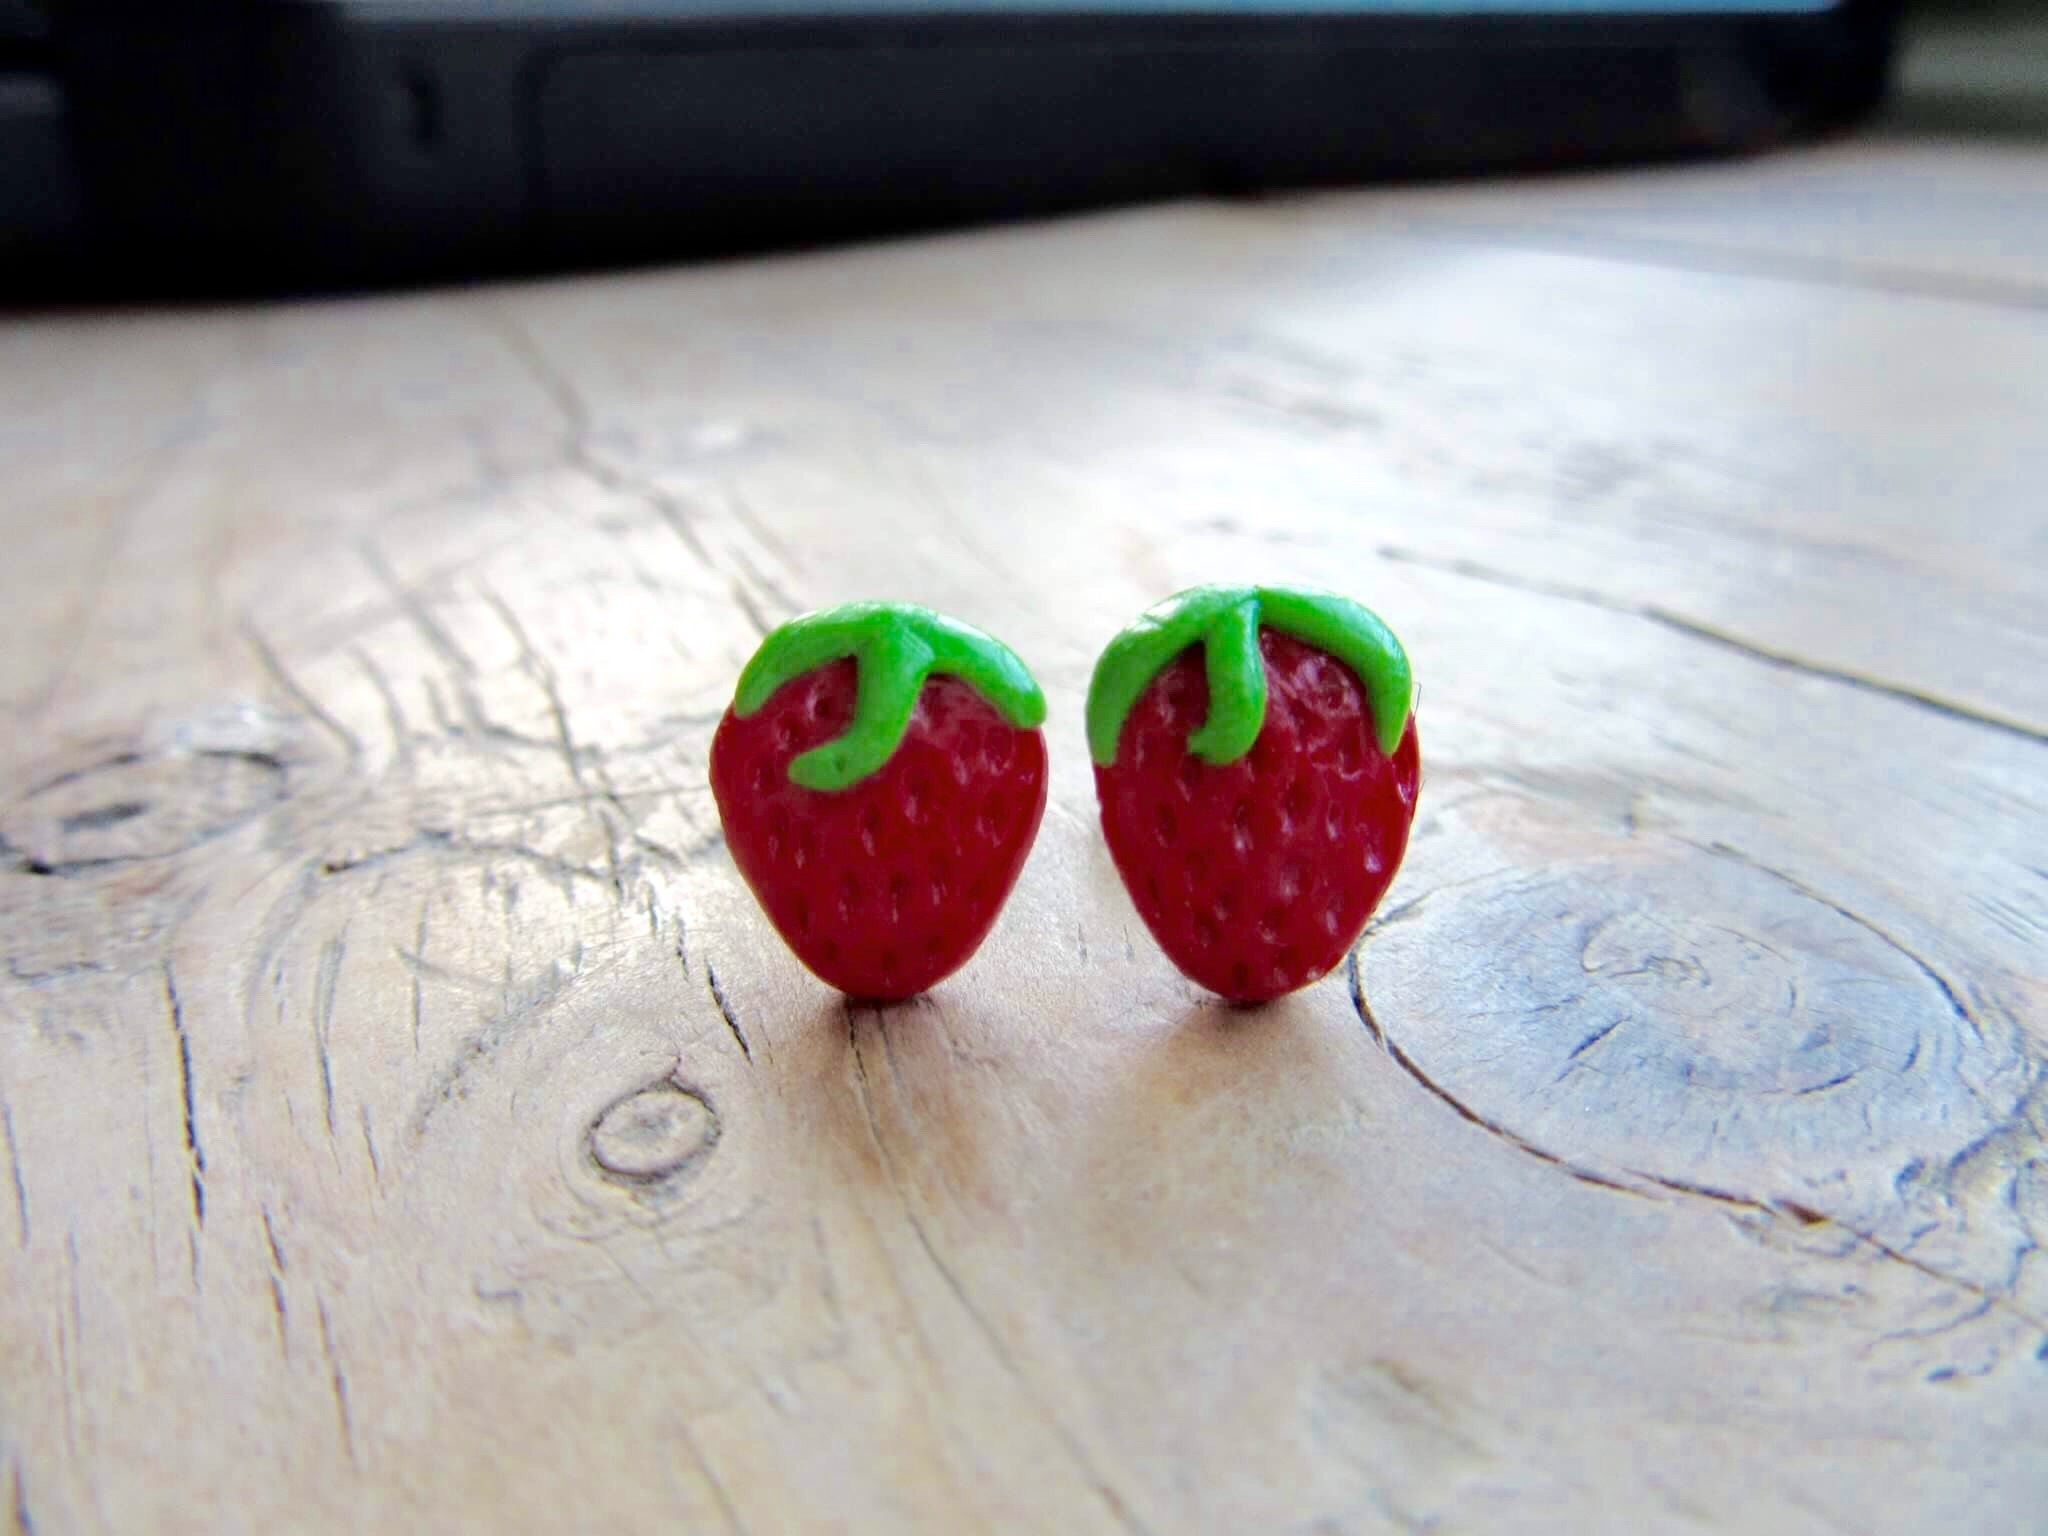 strawberry women slice stud s kids pineapple orangle multiple fruit watermellon lime cherry girls index earrings cocktail drink set